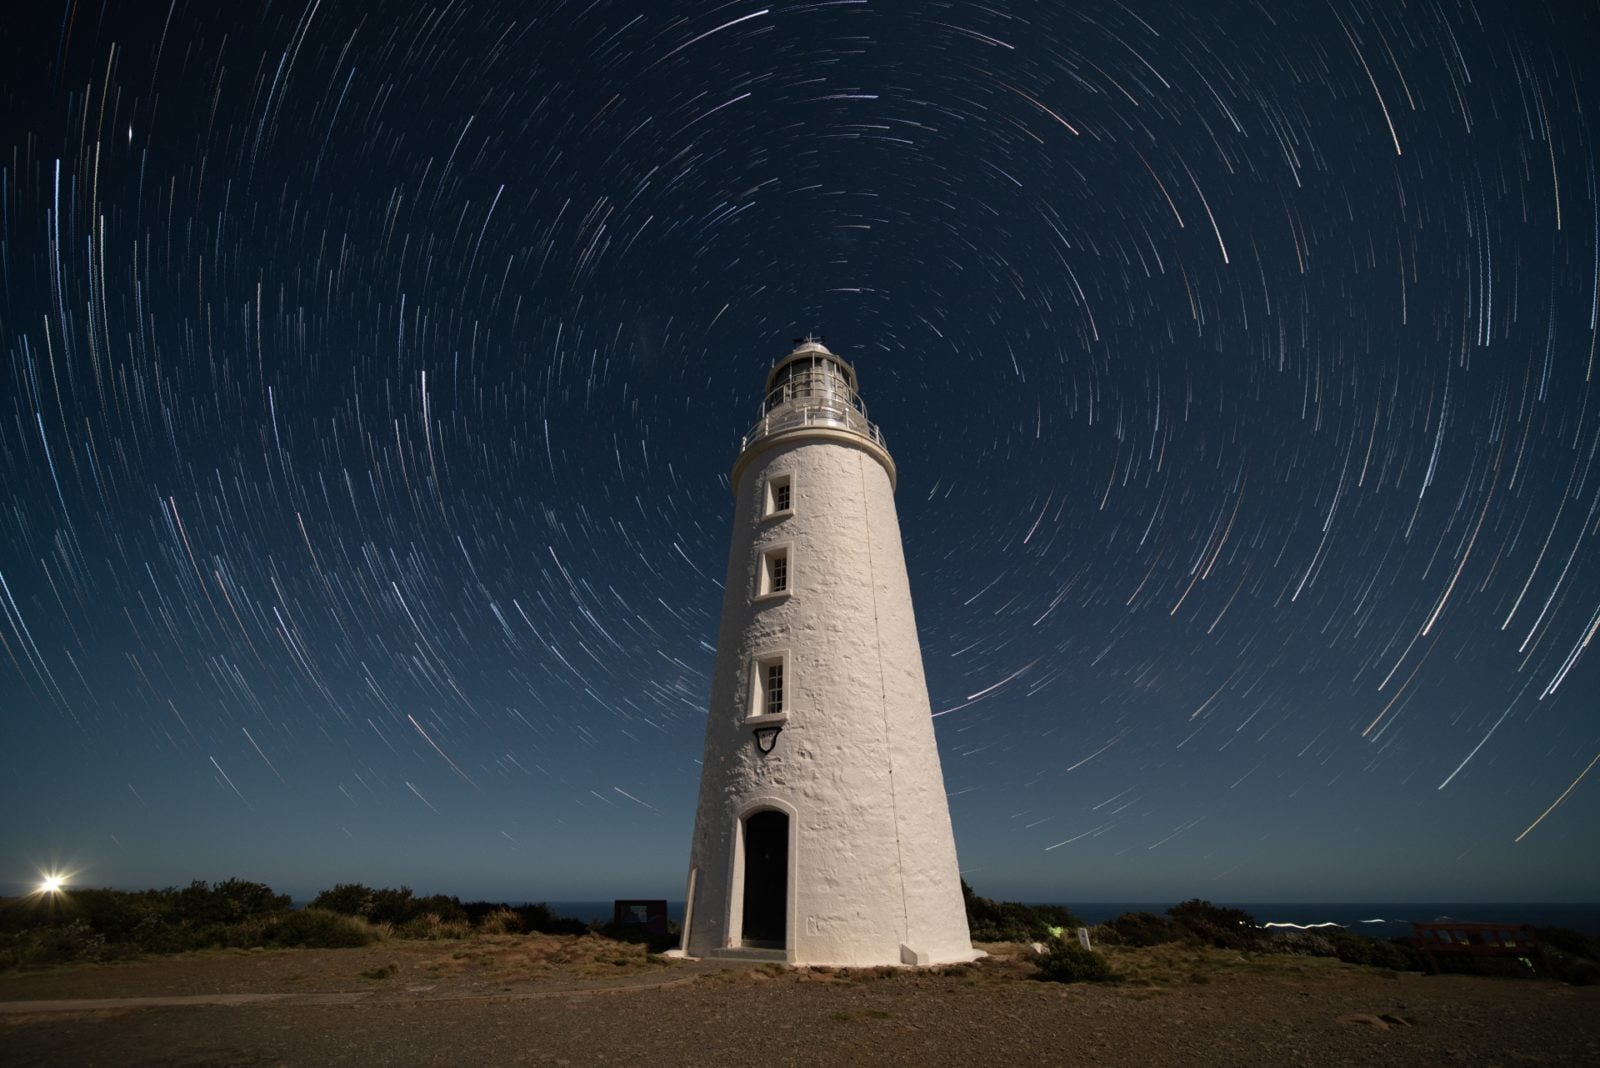 Astrophotography workshop on Bruny Island